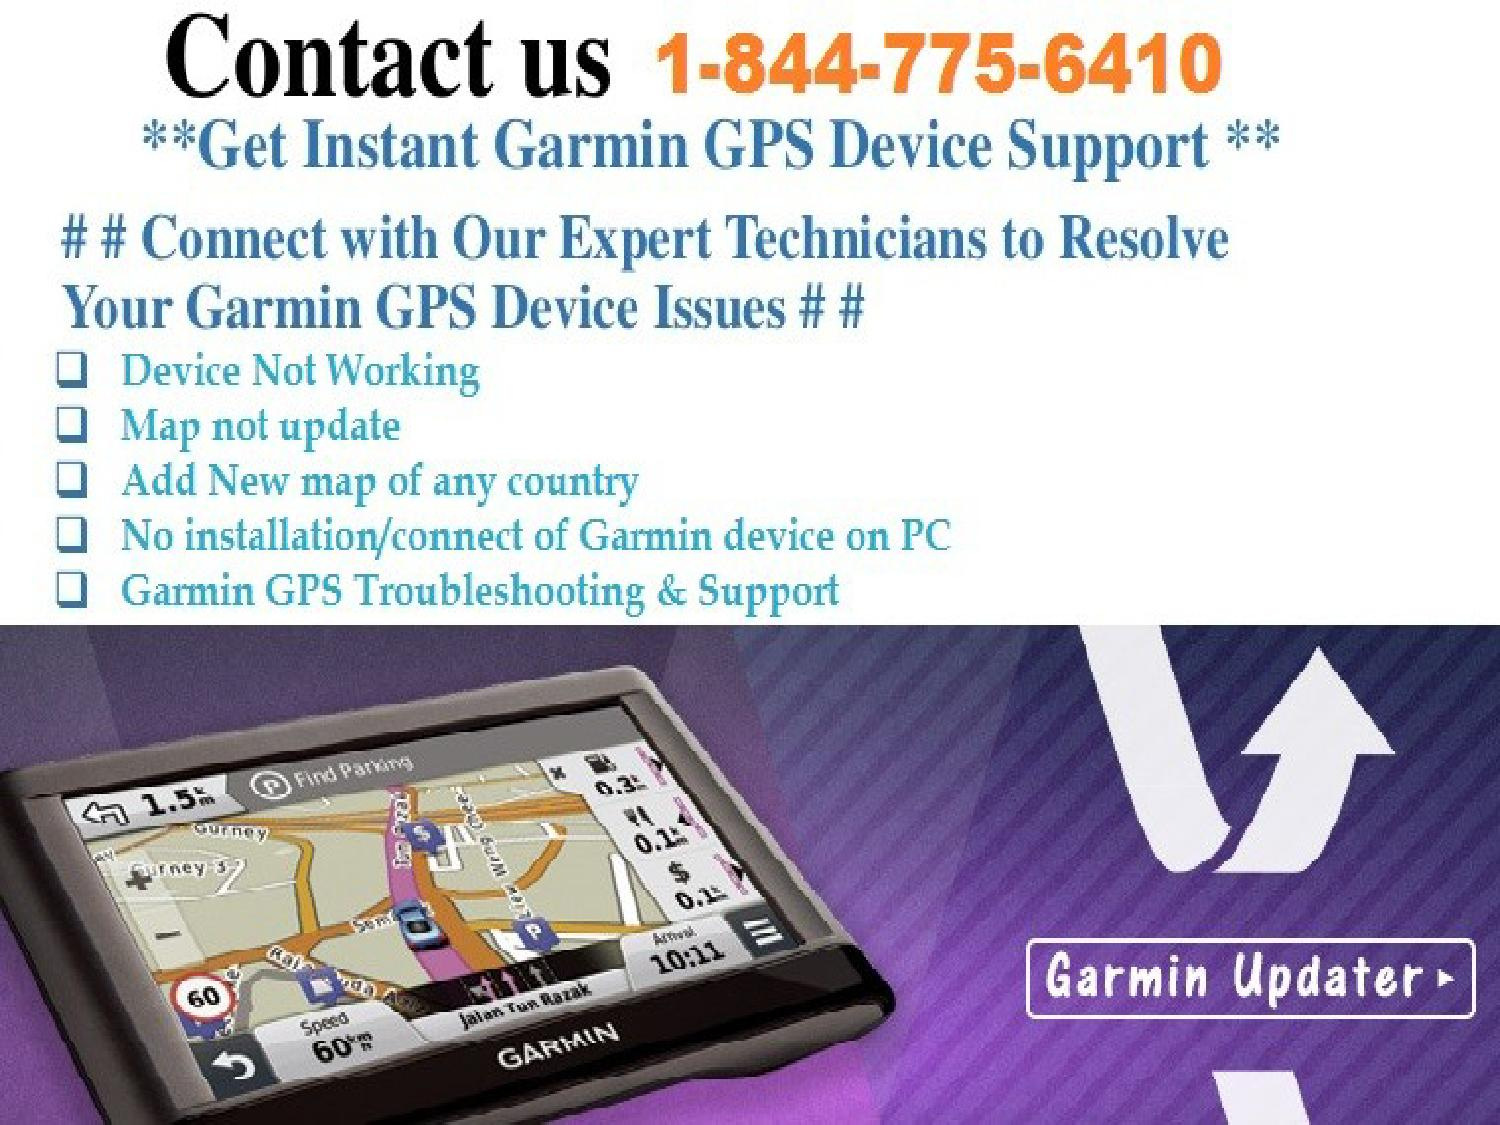 Garmin GPS Maps Update Support @1-844-775-6410 Number*** on gps watch, ef education first–drapac p/b cannondale, flir systems, garmin map 2014.20, automotive navigation system, lowrance electronics, garmin gps updates, gps navigation device, my garmin updates, magellan navigation, garmin software updates, garmin map updater not working, garmin lifetime map upgrade, garmin map product key, global positioning system, garmin nuvi updates,